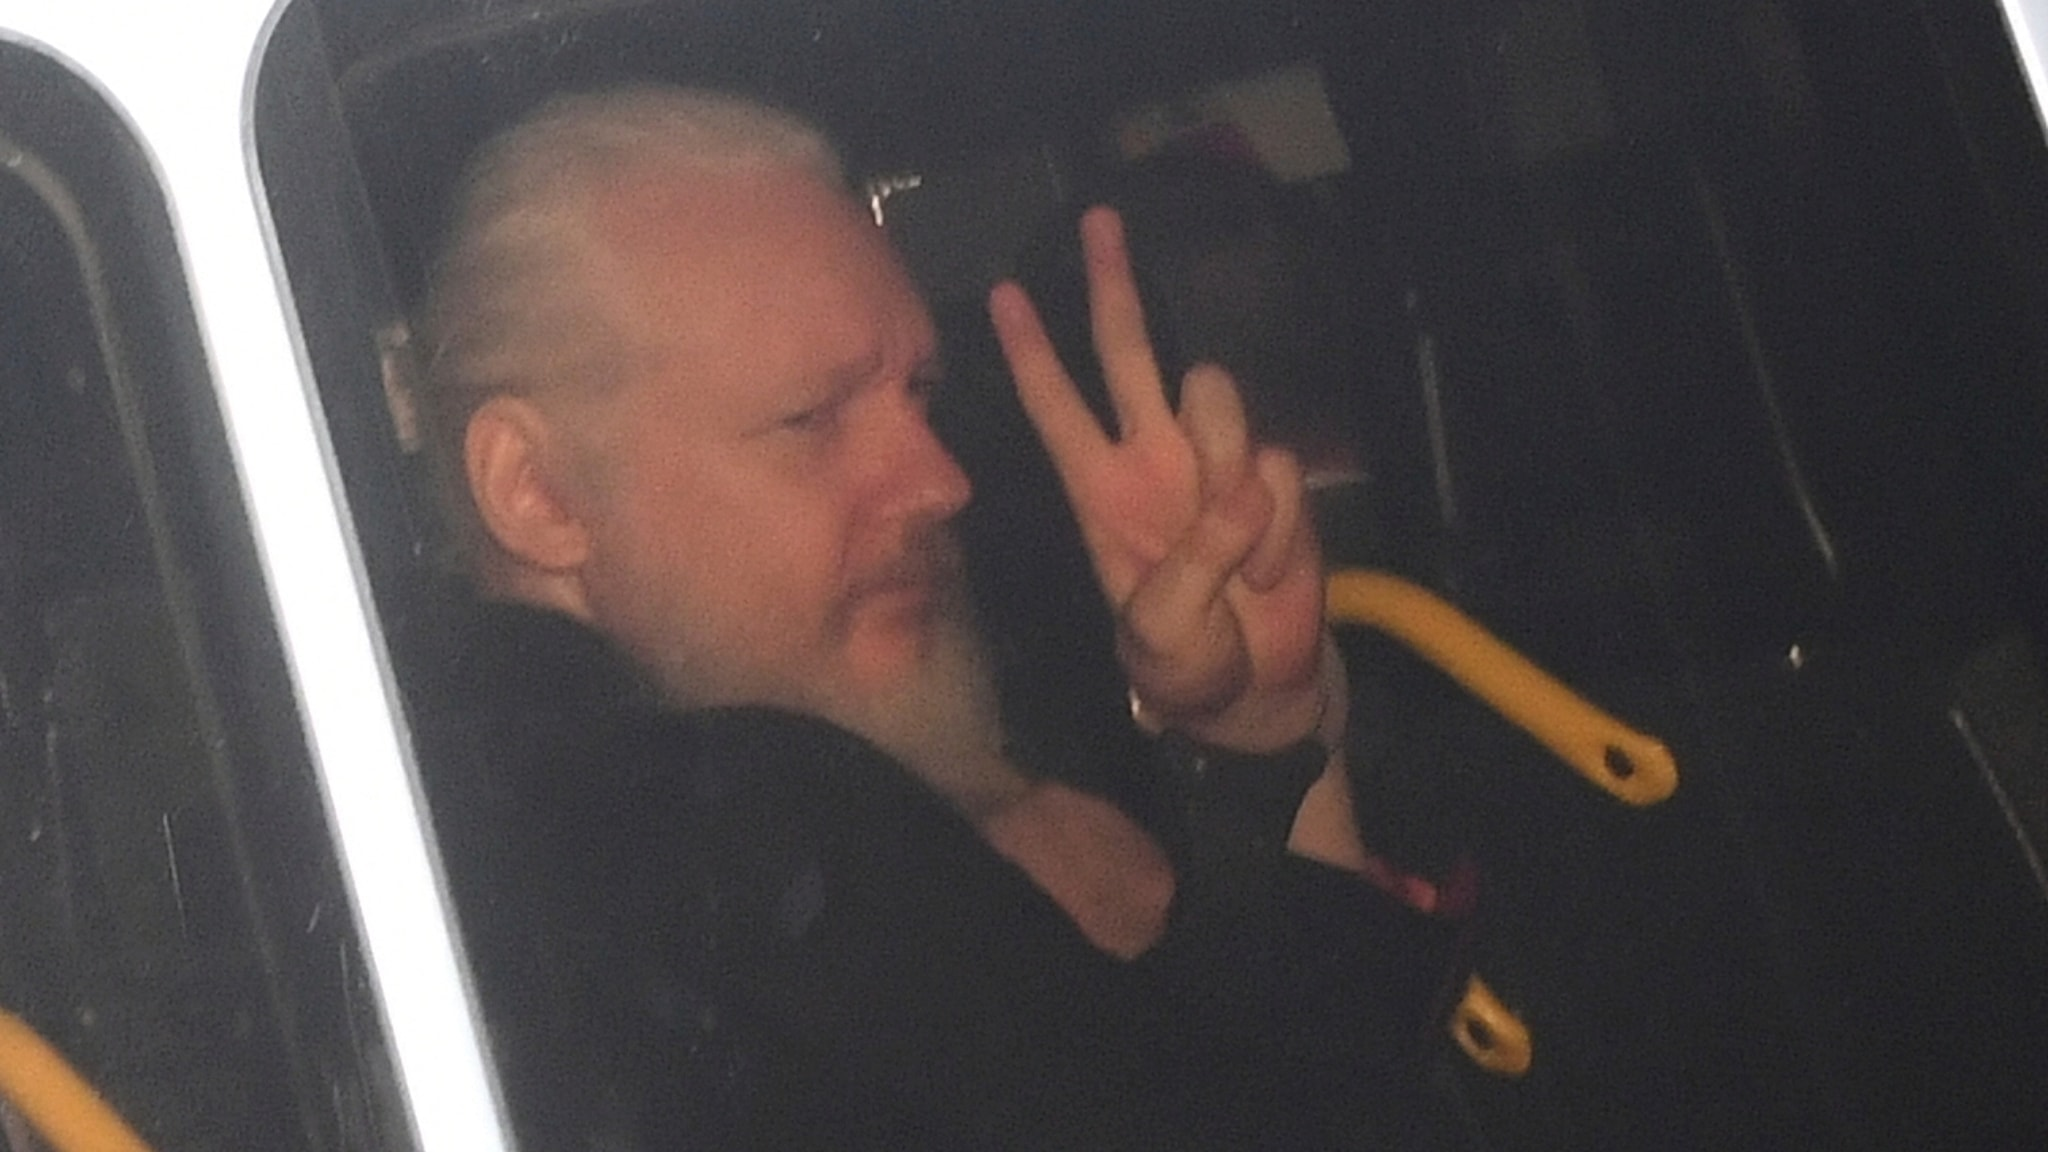 A man giving the peace sign.